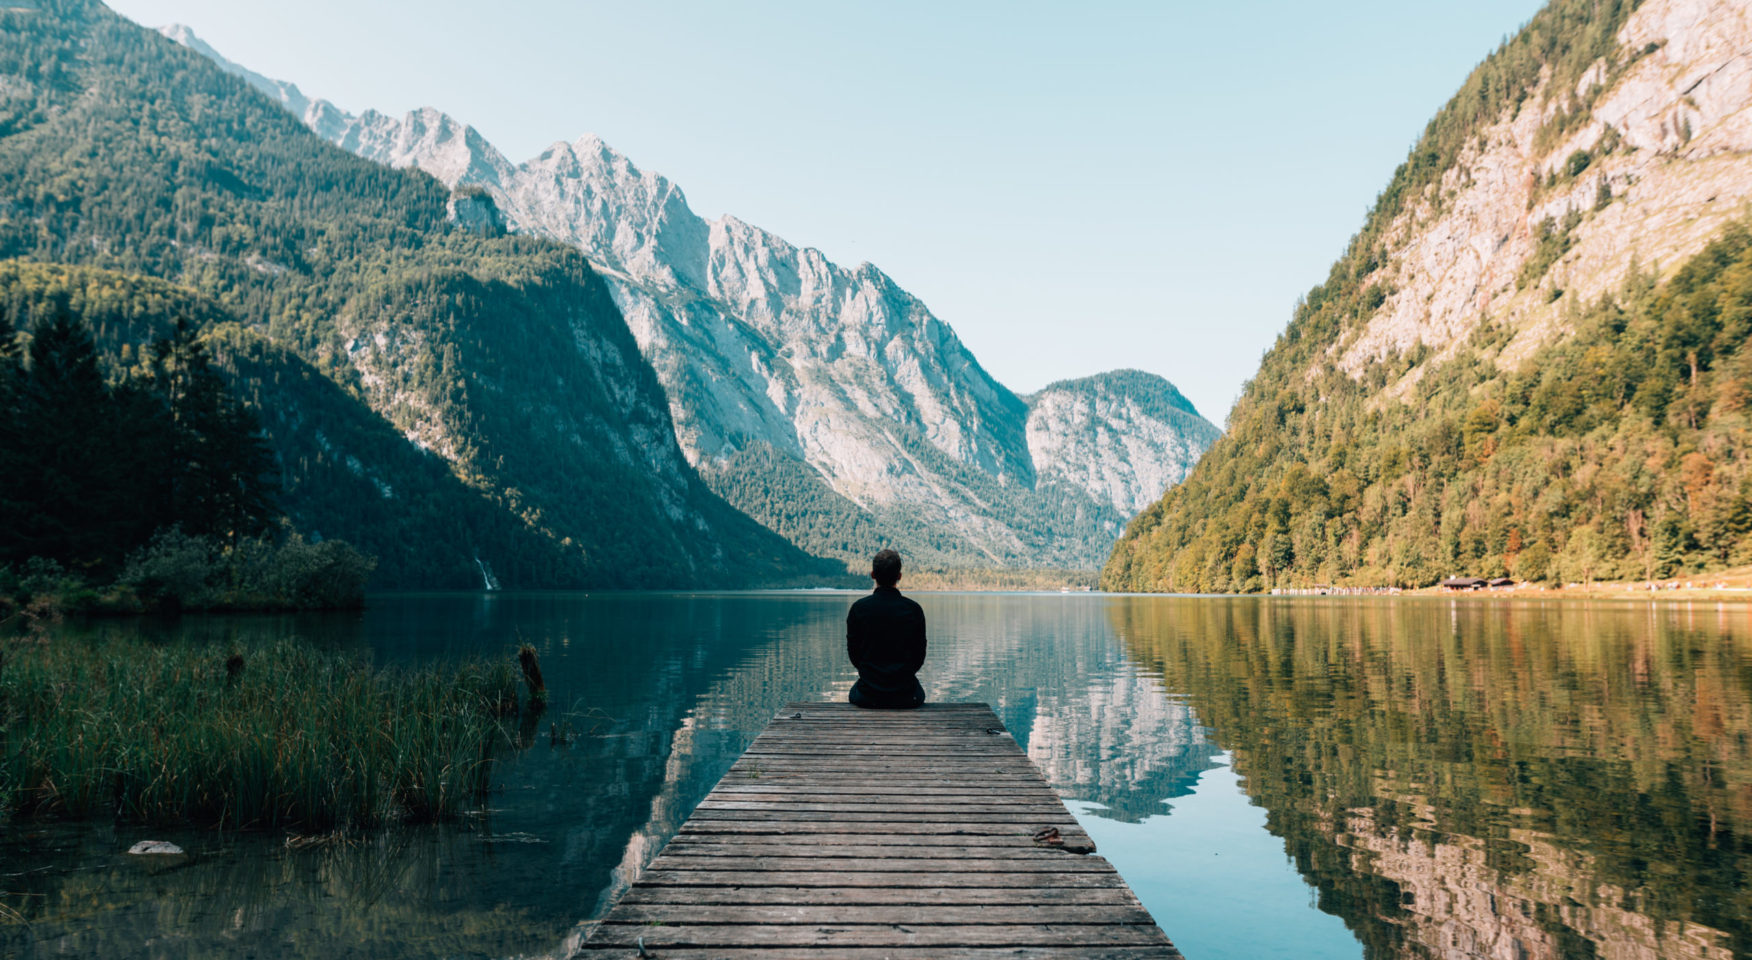 Person sitting on a dock at mountain lake